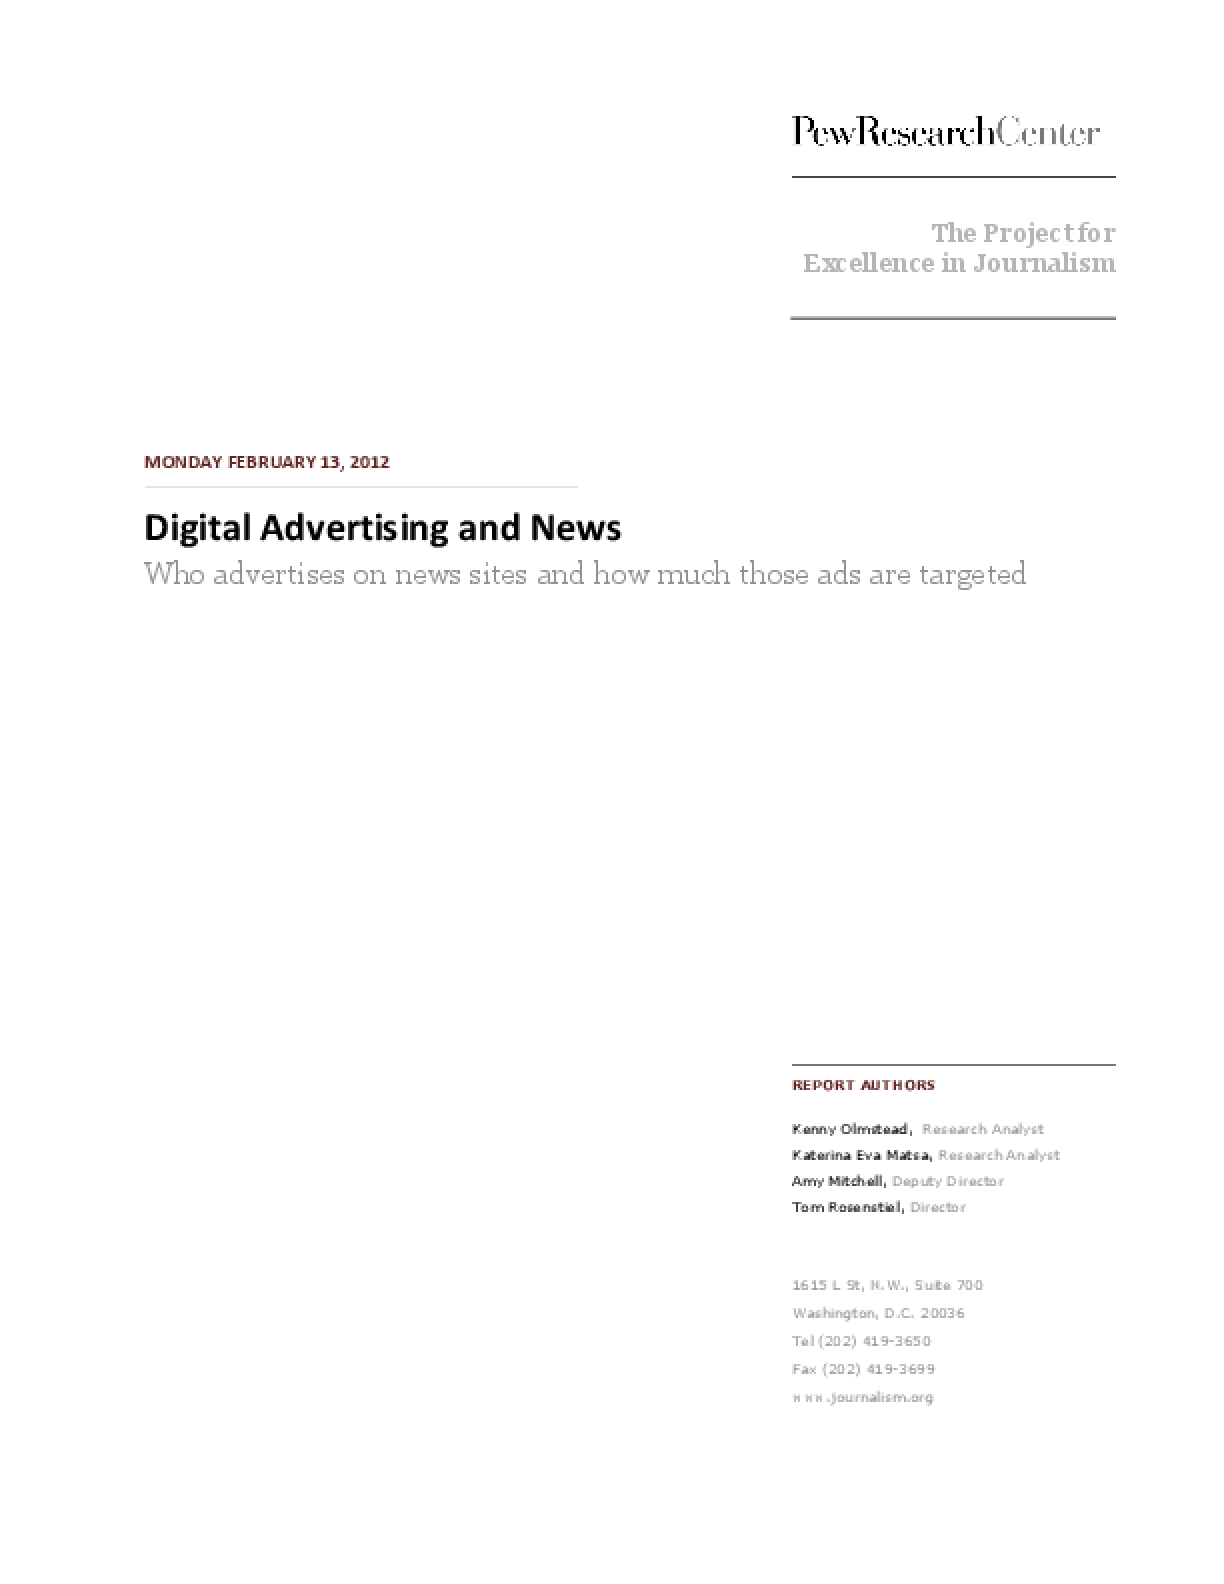 Digital Advertising and News: Who Advertises on News Sites and How Much Those Ads Are Targeted